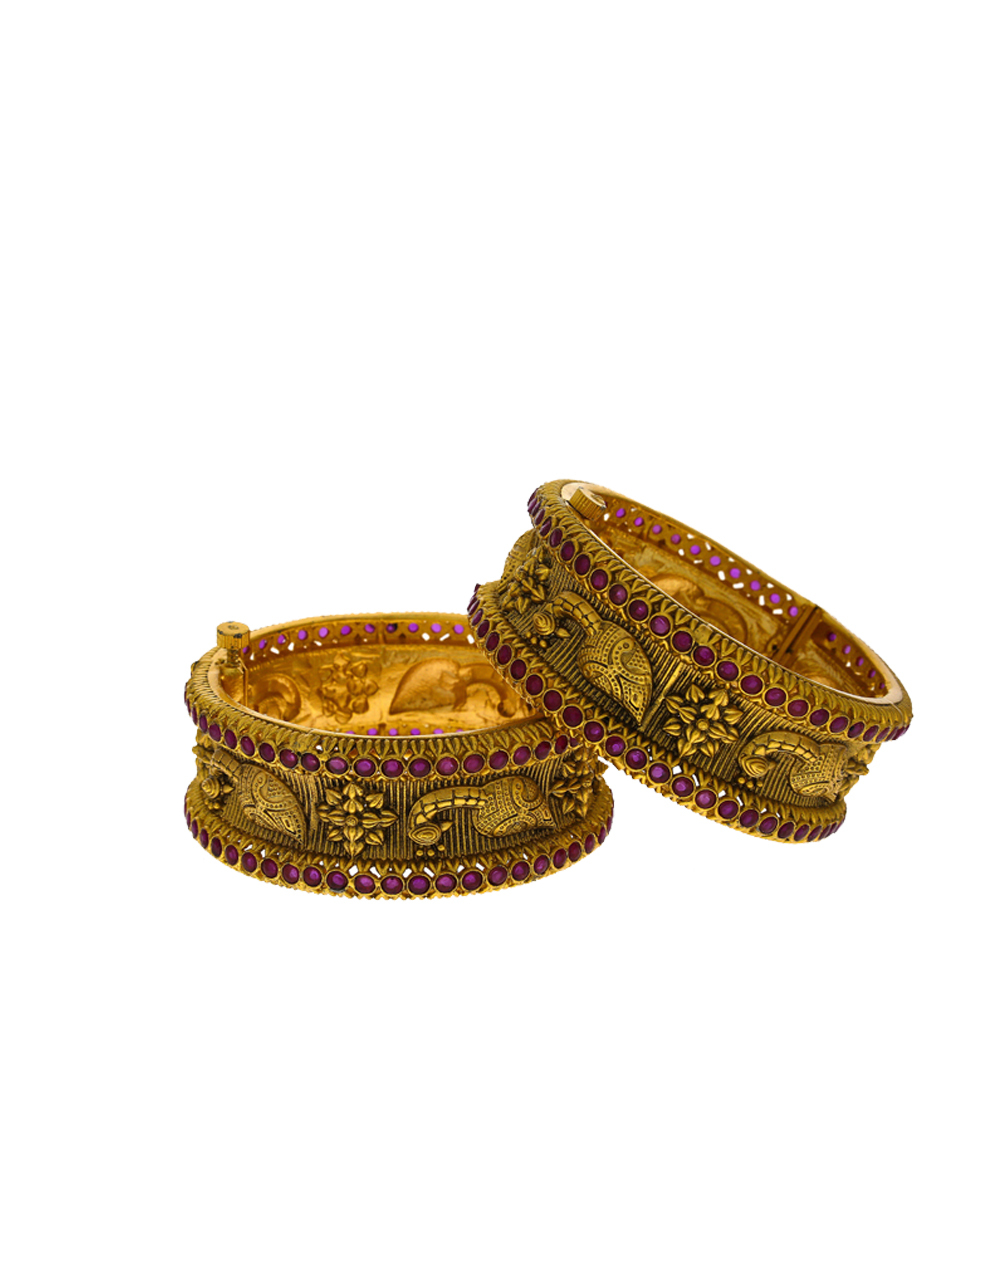 Peacock Design With Matte Gold Floral Finish Bangles For Women